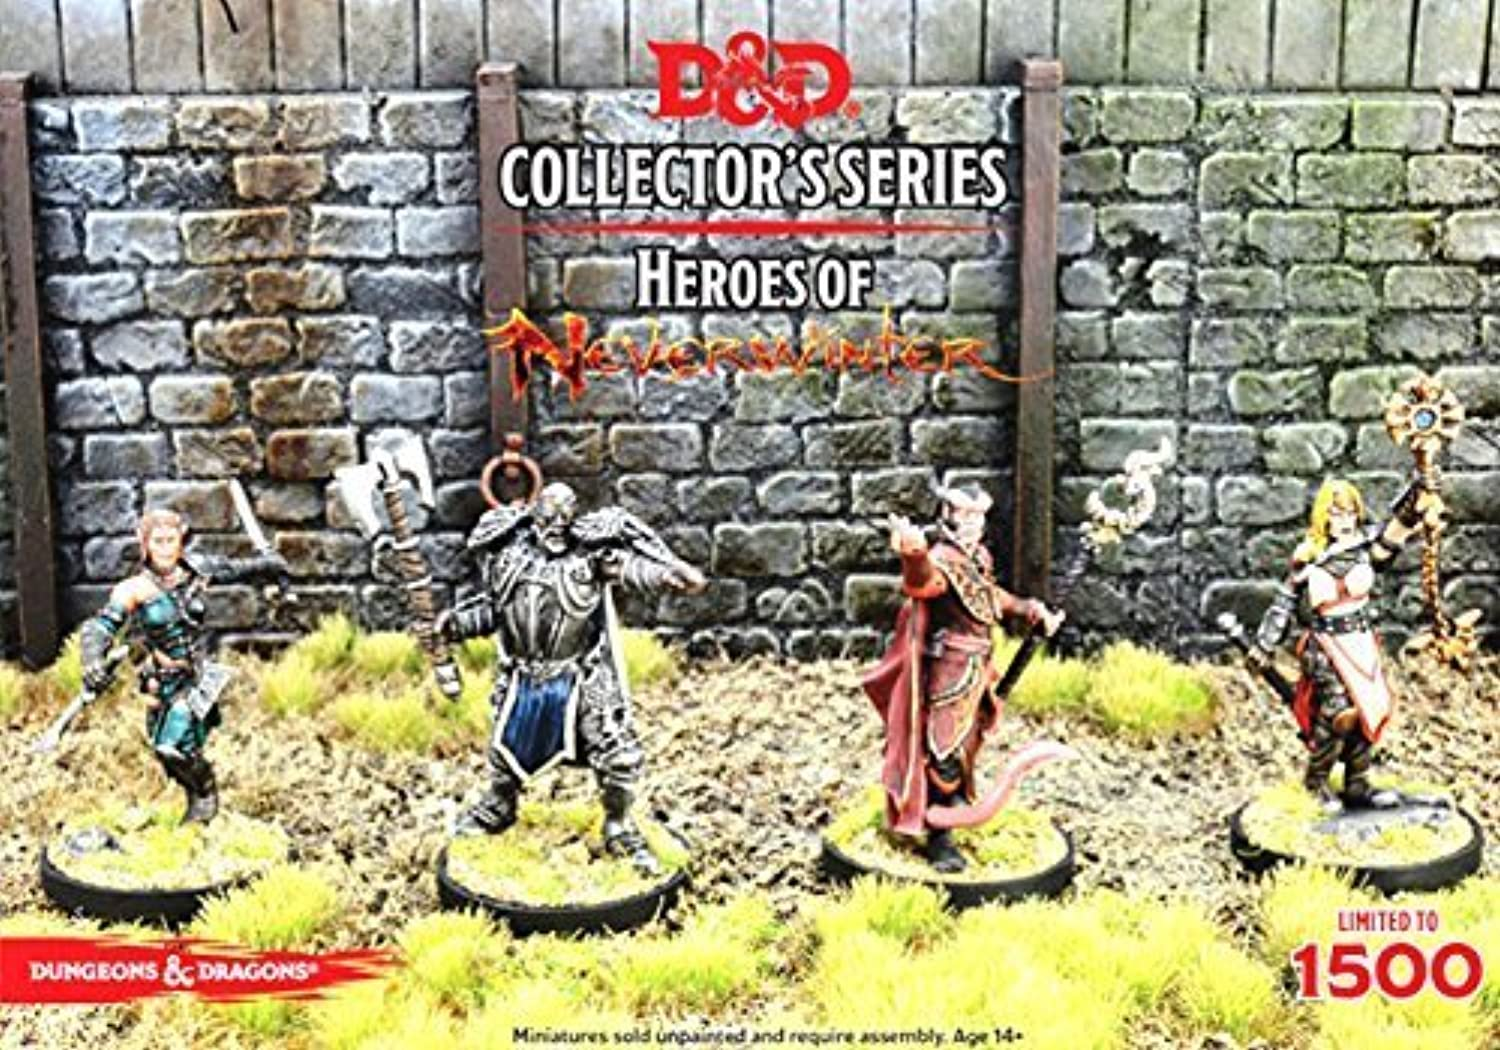 Dungeons & Dragons Collector's Series Heroes of Neverwinter GF9 71027 by Gale Force Nine